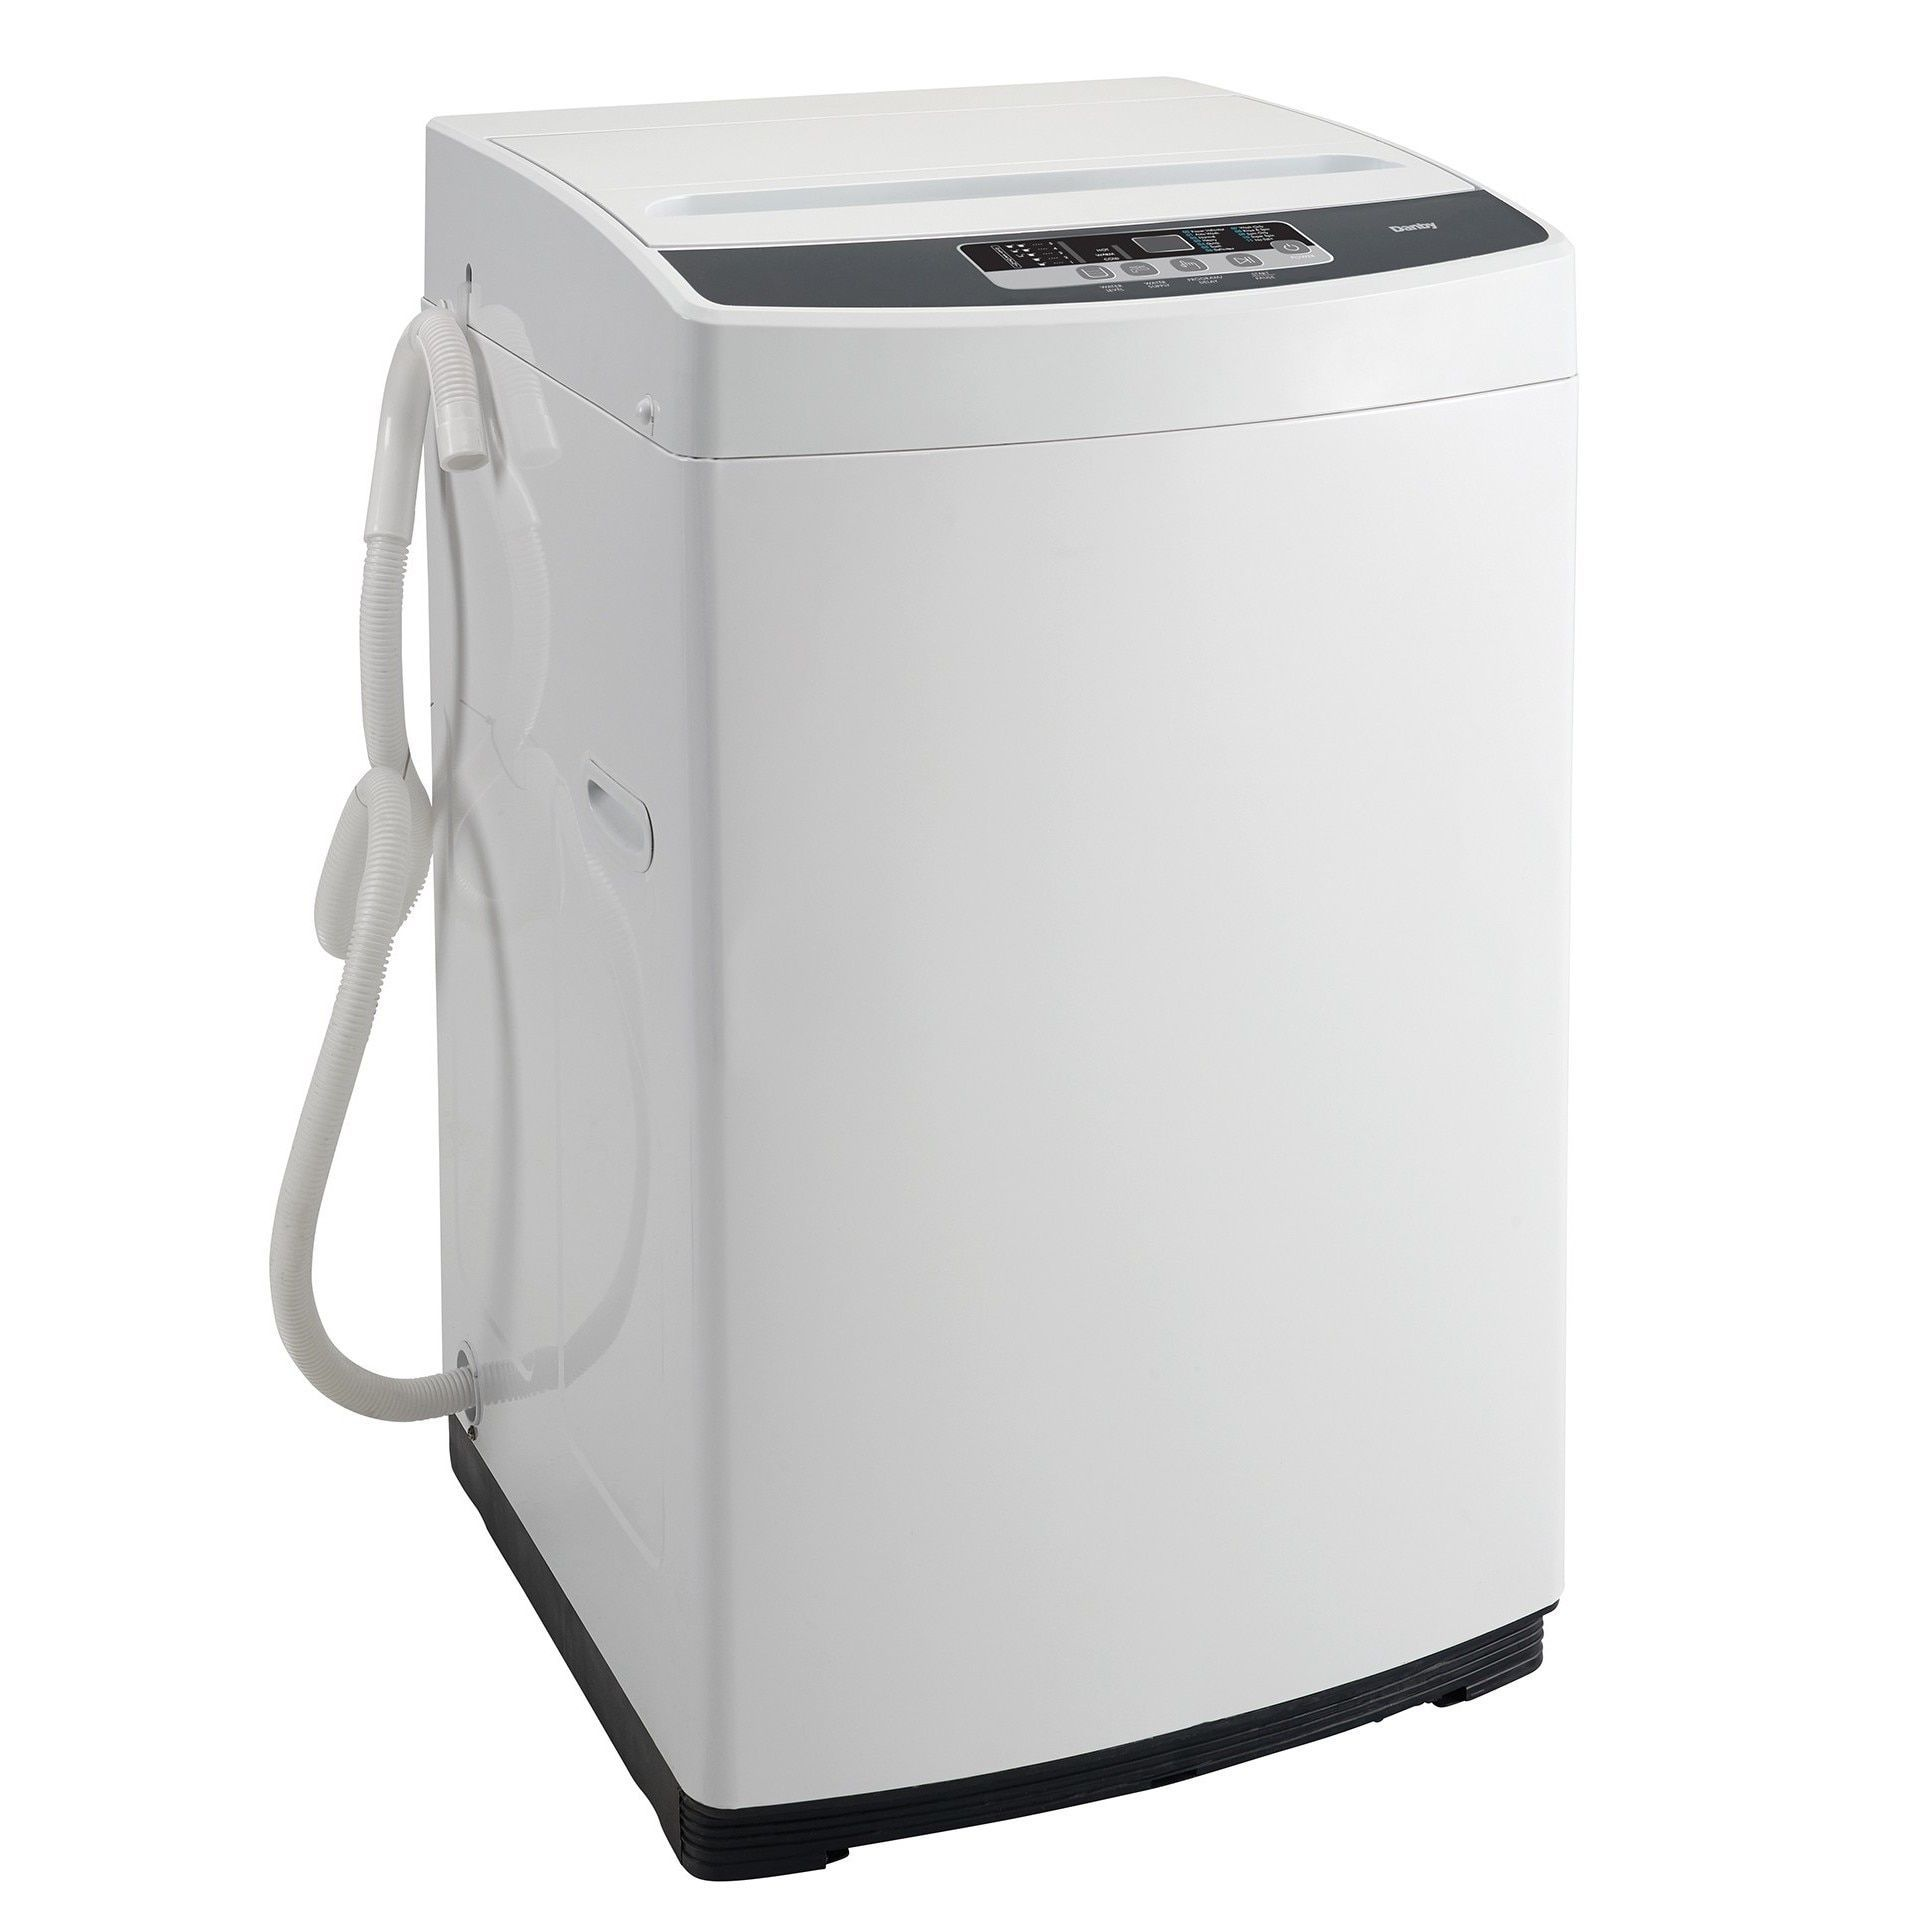 Danby pound washing machine white lb white products